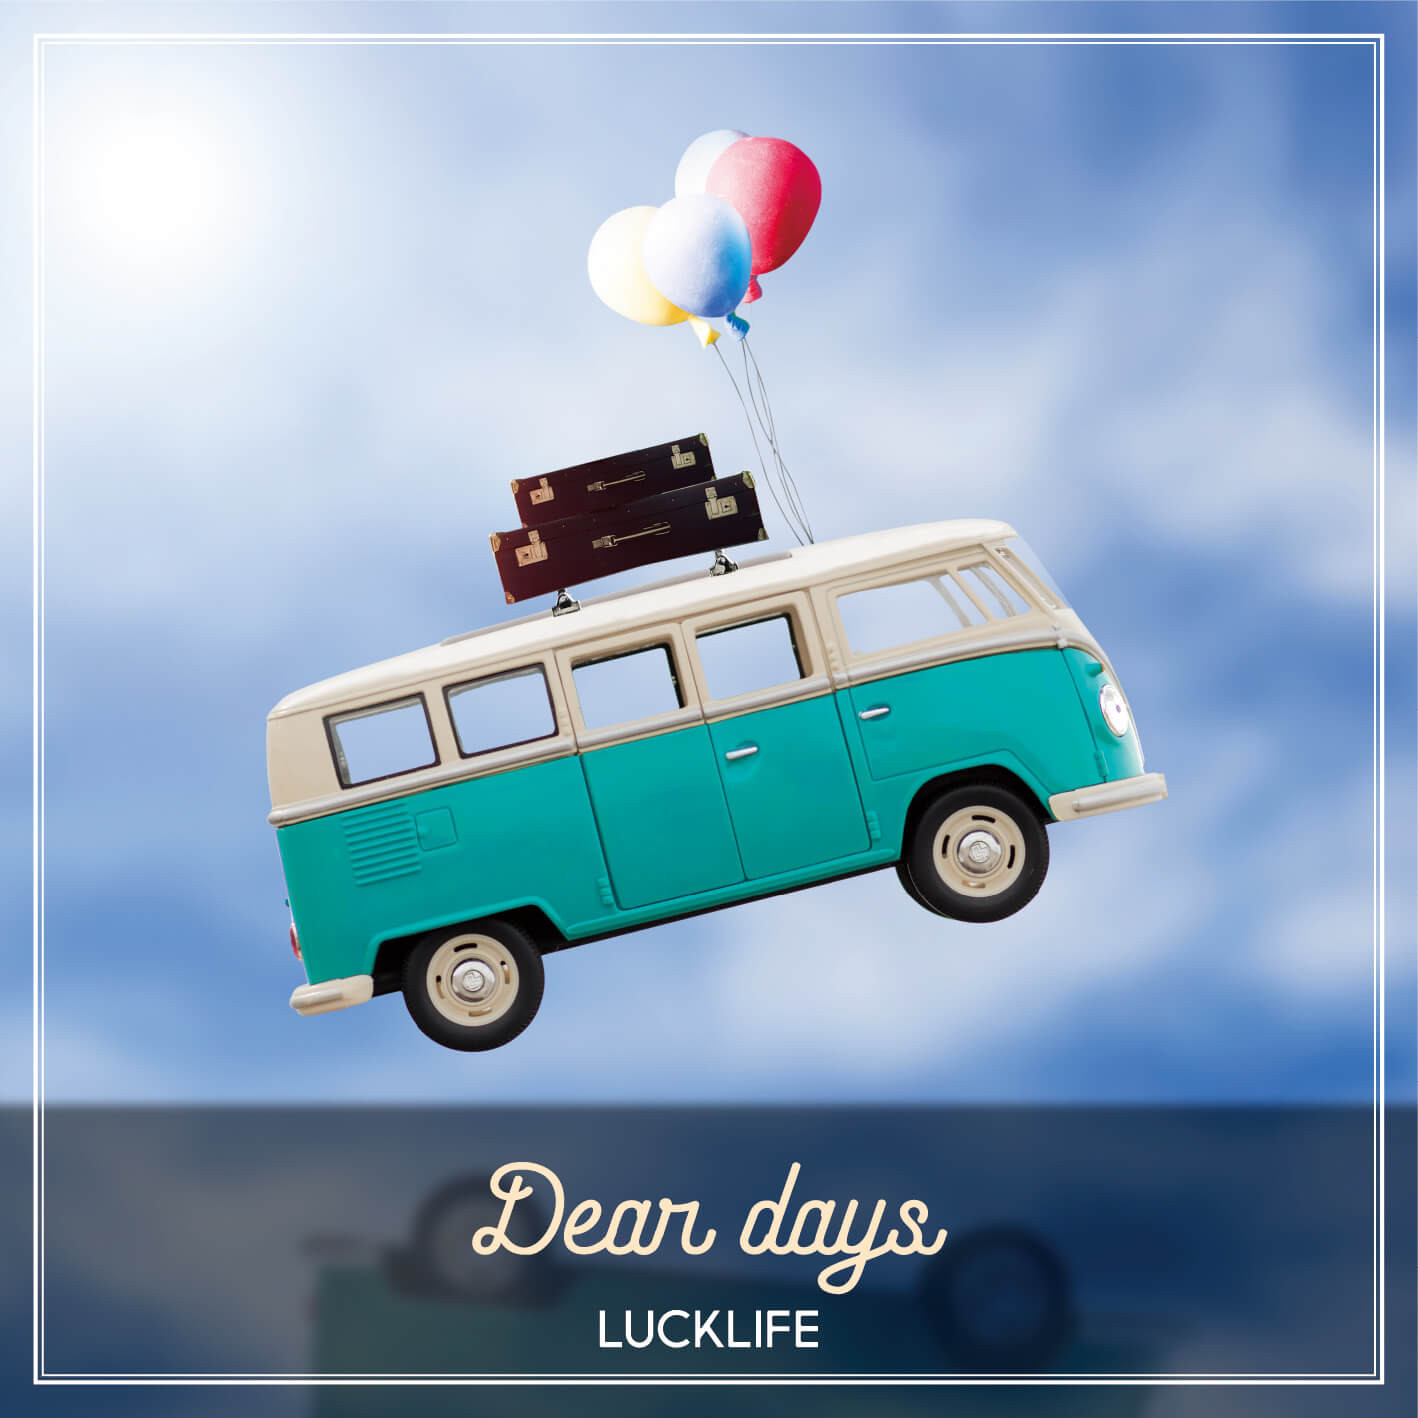 Album Luck Life Dear days